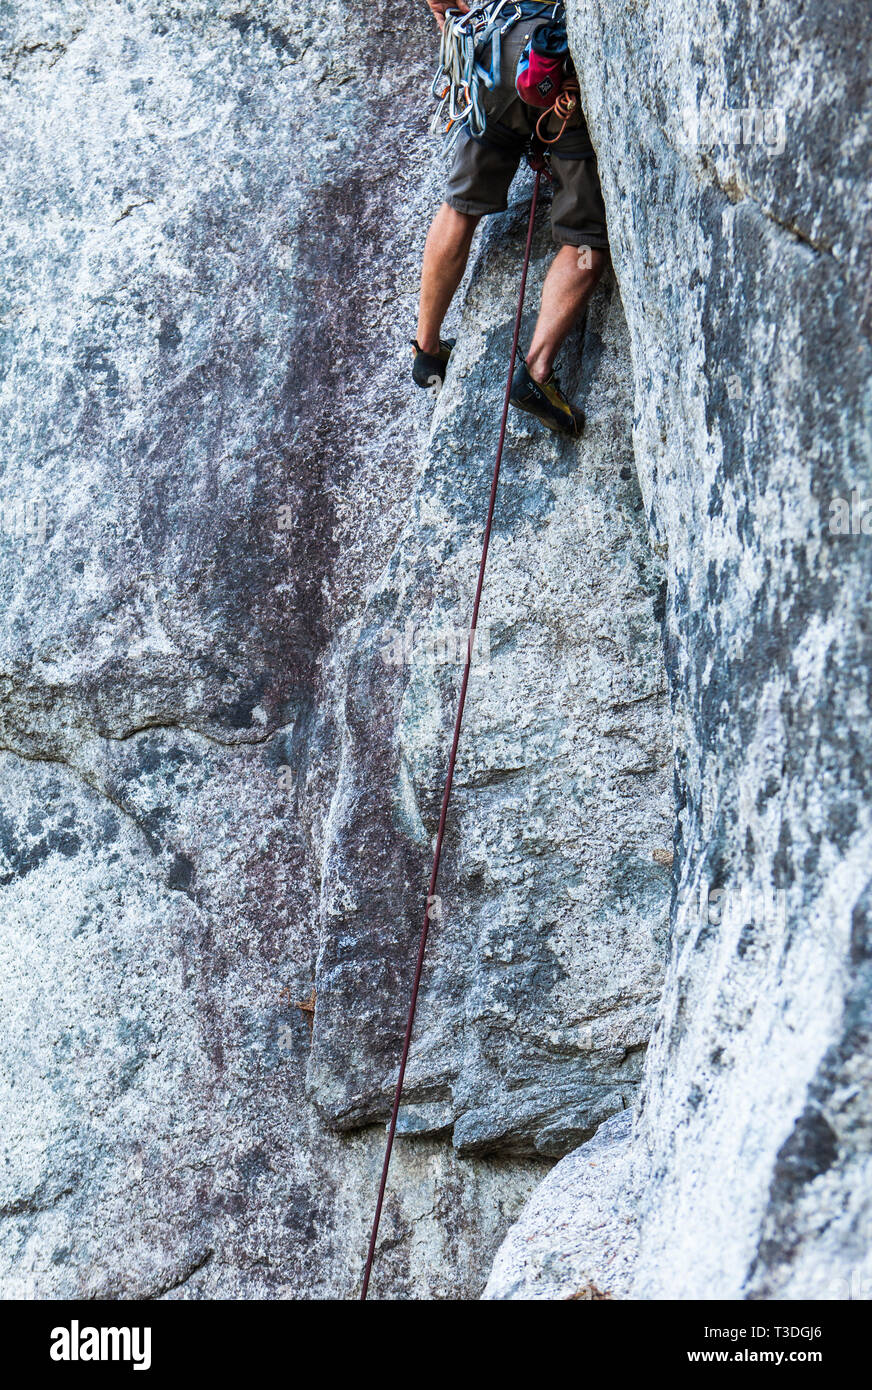 A male rock climber running it out (Climbing a long way without protecting the potential fall) in the Little Smoke Bluffs climbing area, Squamish, BC, - Stock Image